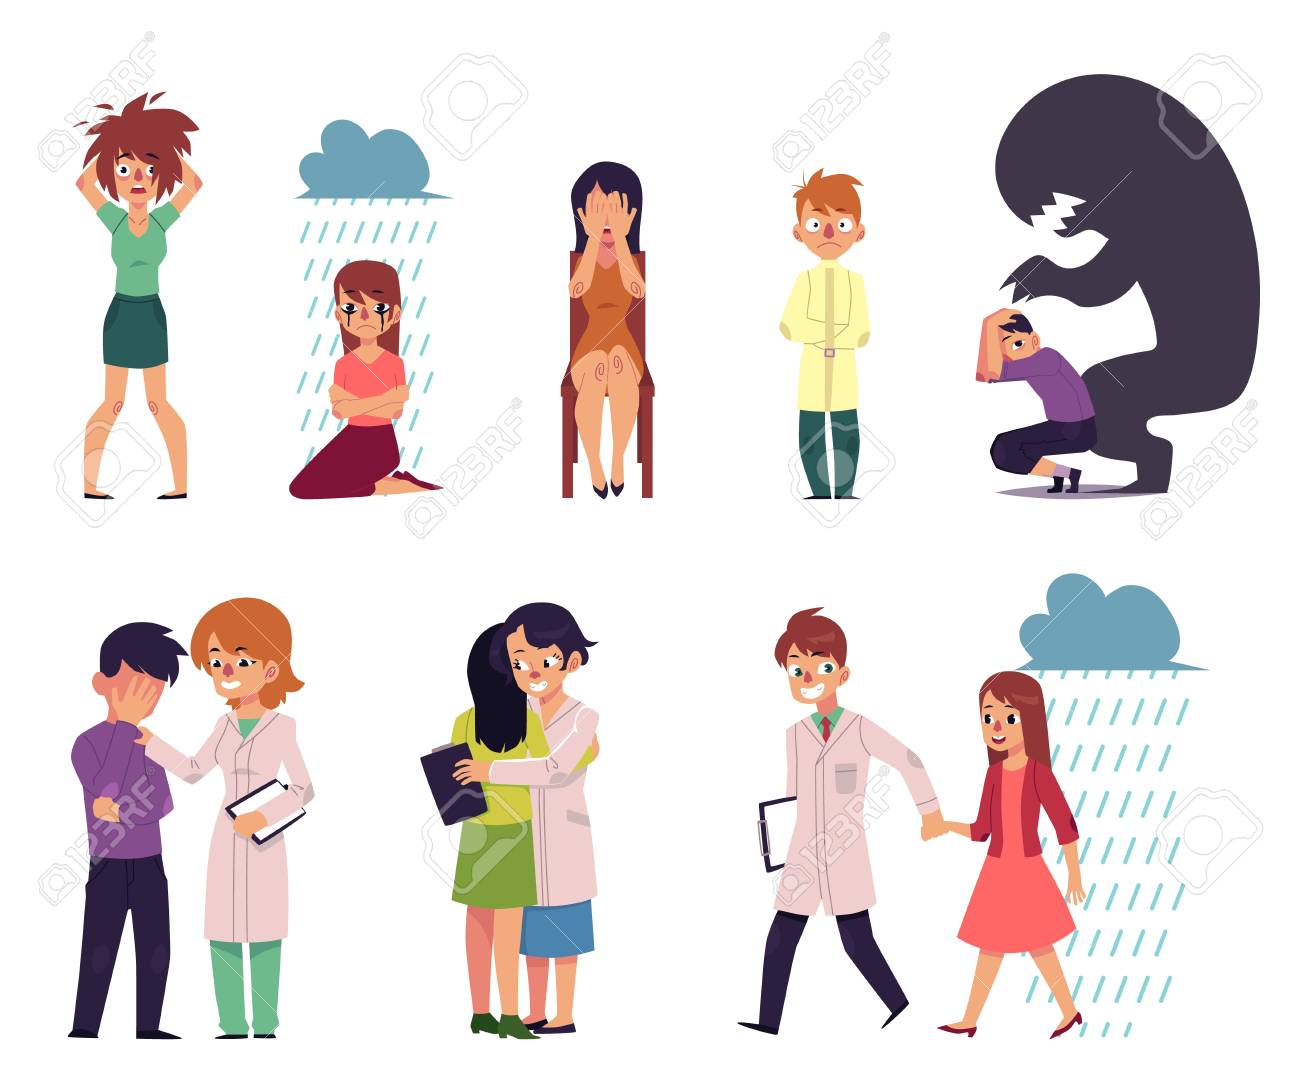 vector flat mental illness, disorder set. Male, female characters suffering from anxiety, depression fear madness grief and man, woman doctors helping. Isolated illustration white background - 95326763